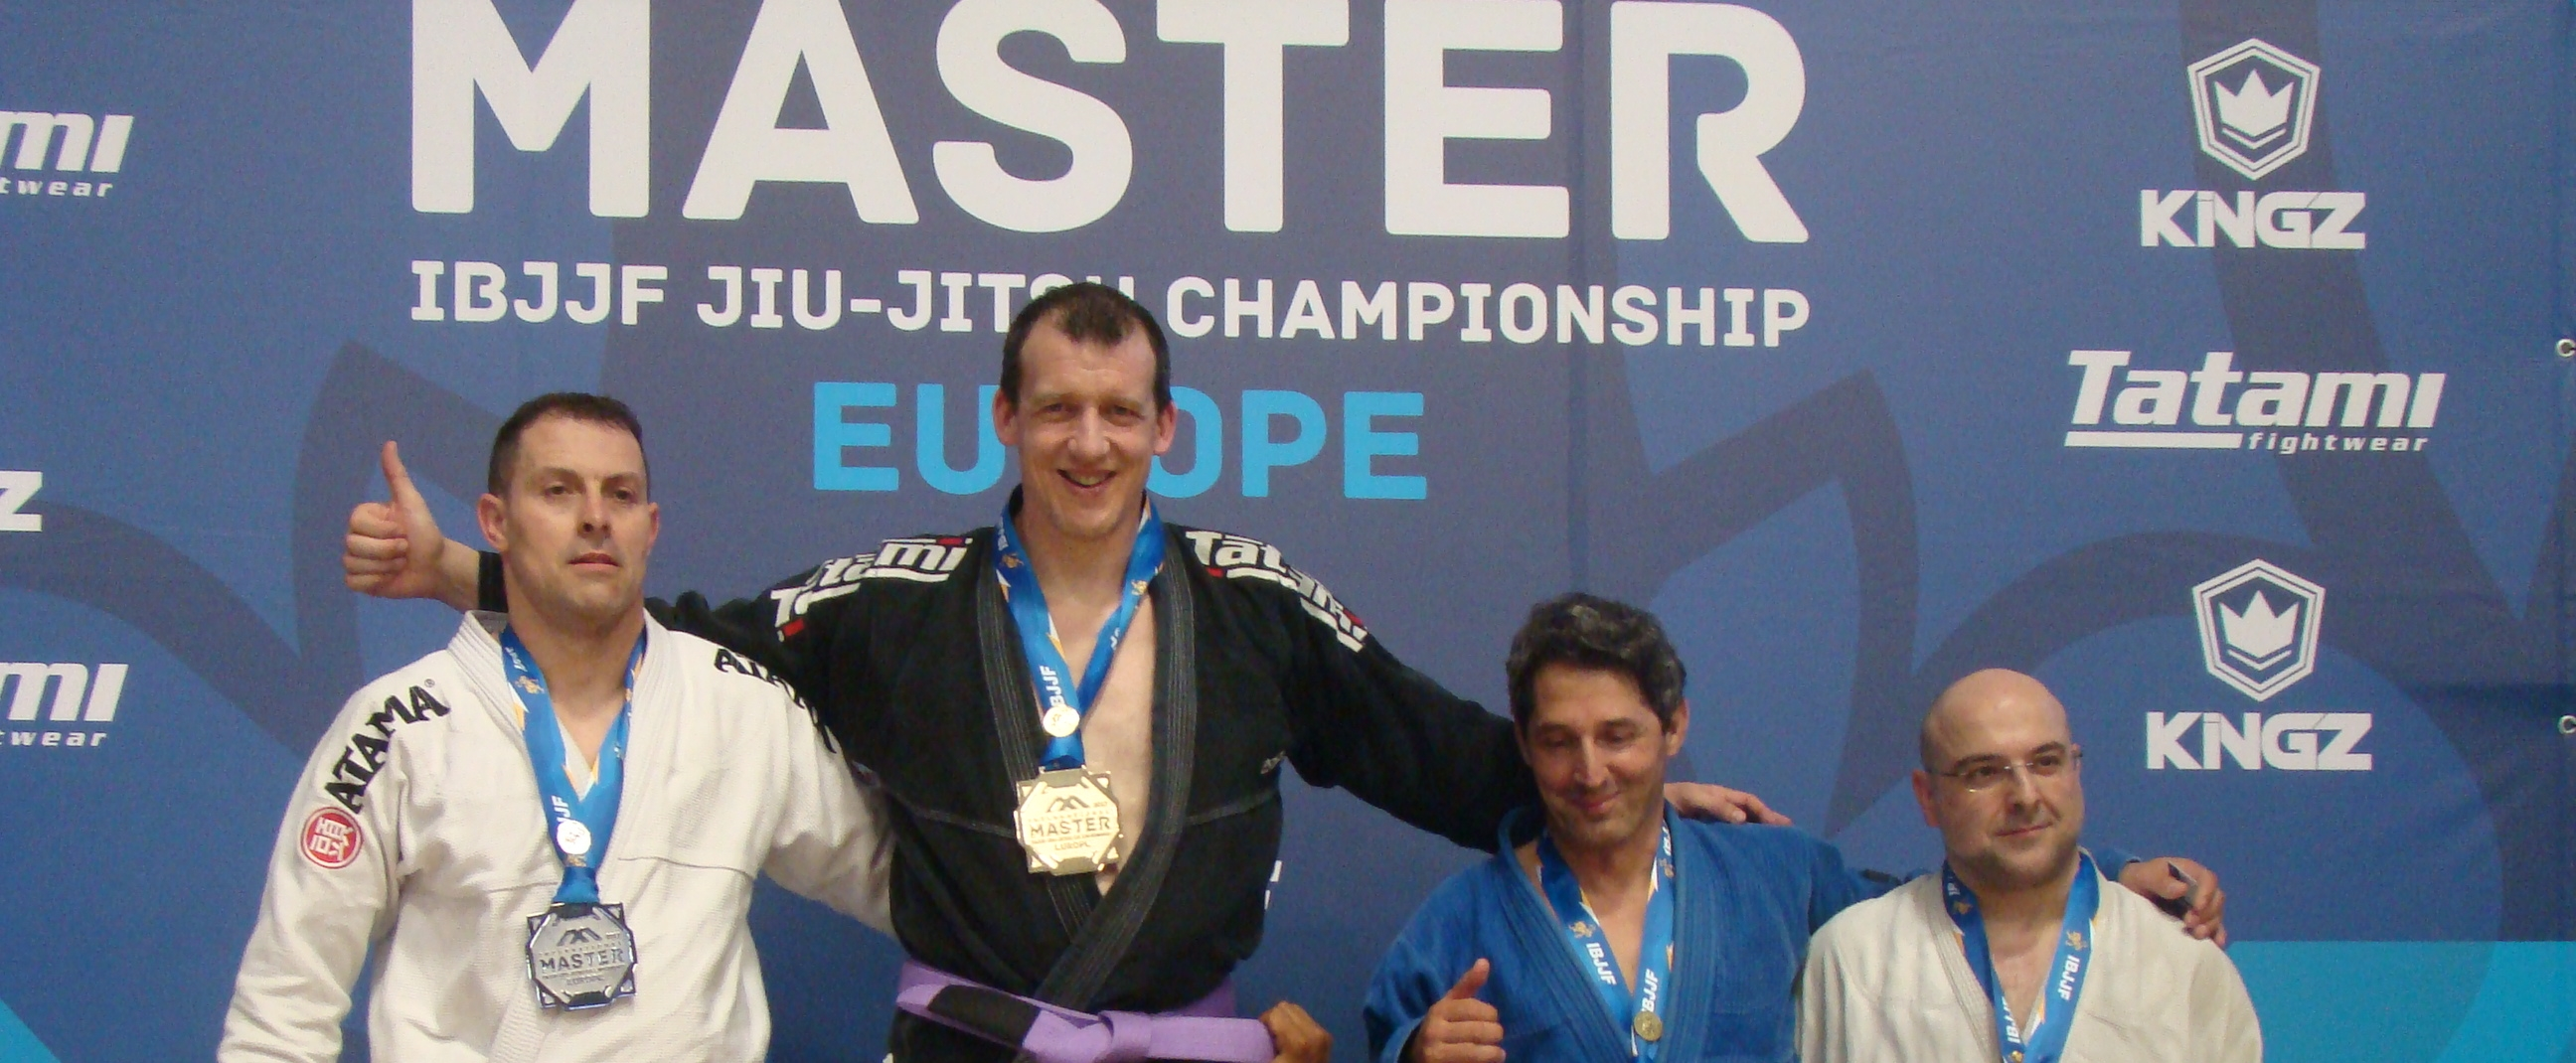 Masters Cyril 2017_1